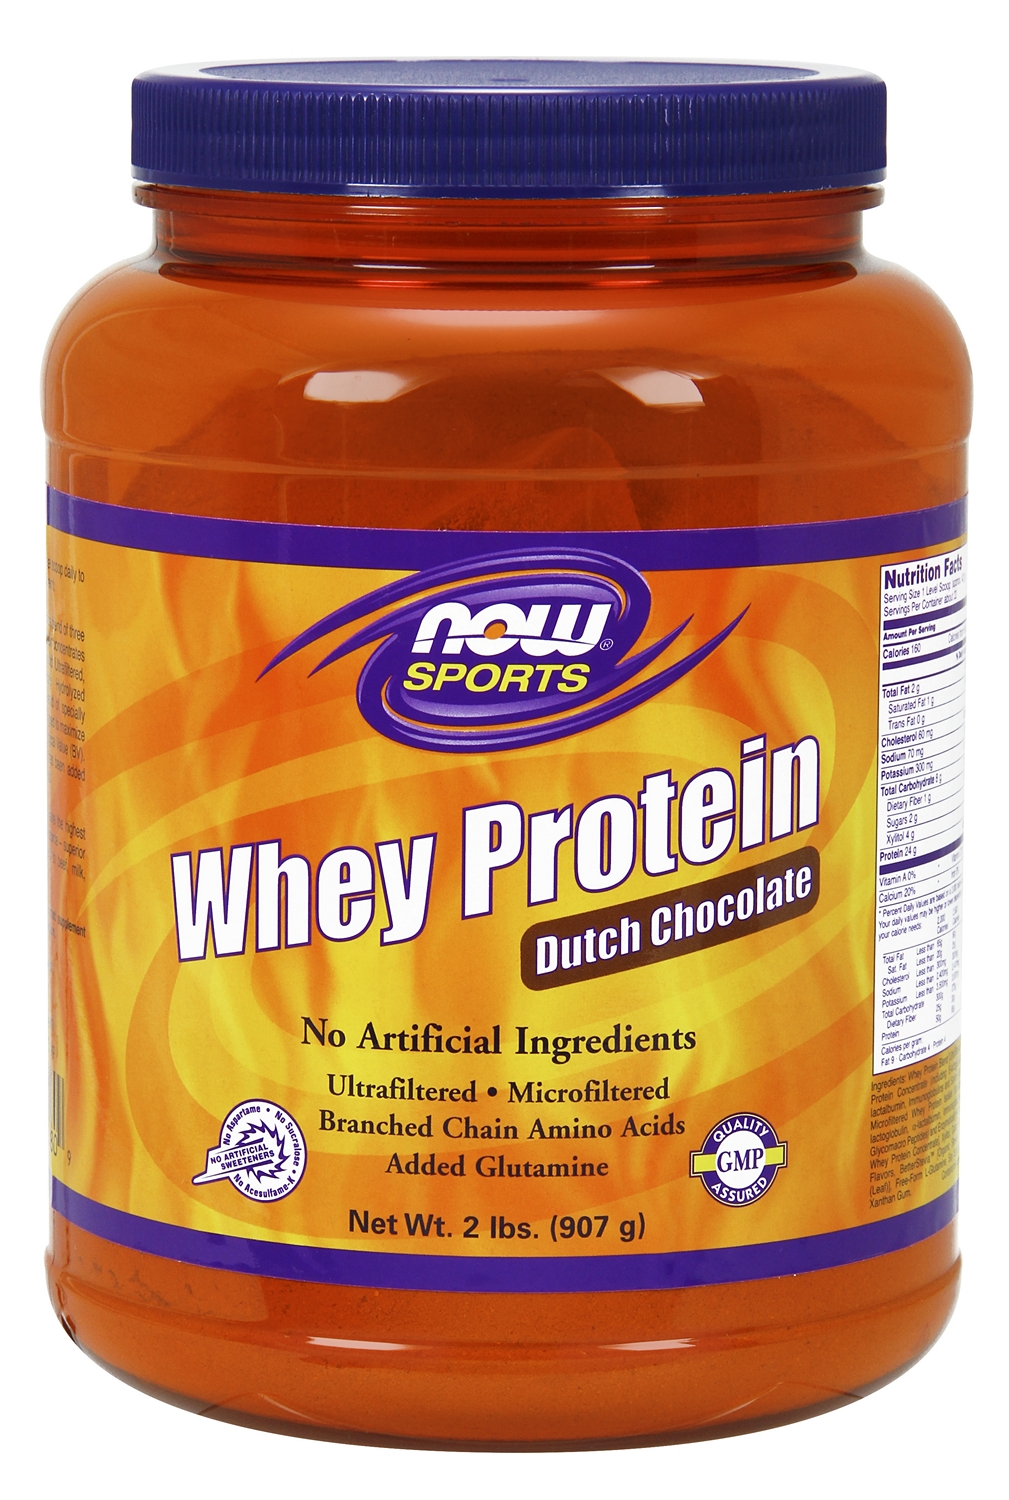 Whey Protein Dutch Chocolate 2 lbs (908 g) by NOW (expires 04/2015)